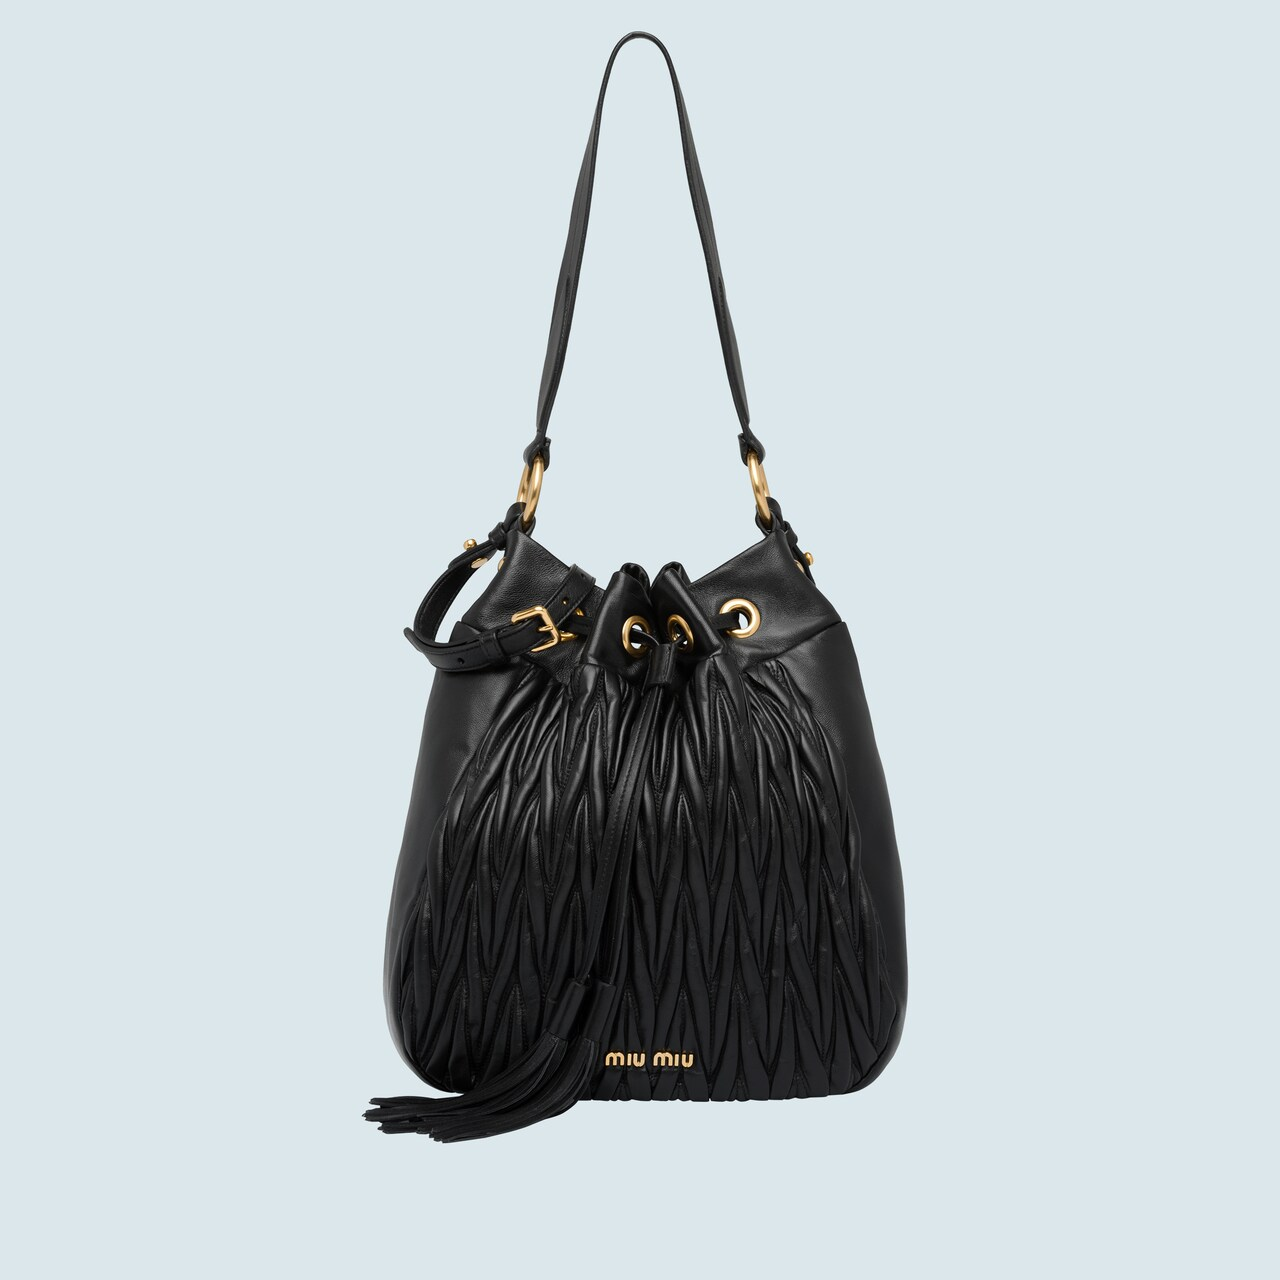 2b629aa1c6 Matelassé leather bucket bag